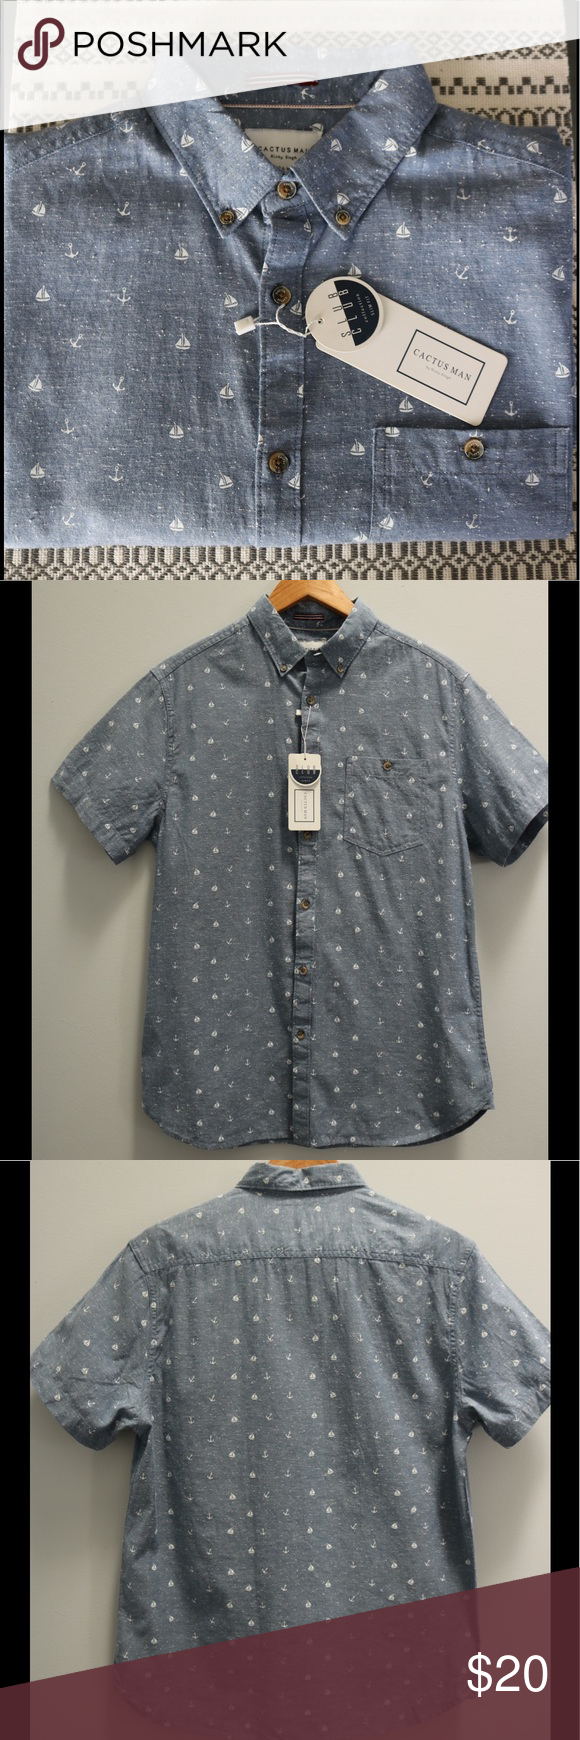 Cactusman Button Down Shirt Nwt My Posh Picks Casual Button Down